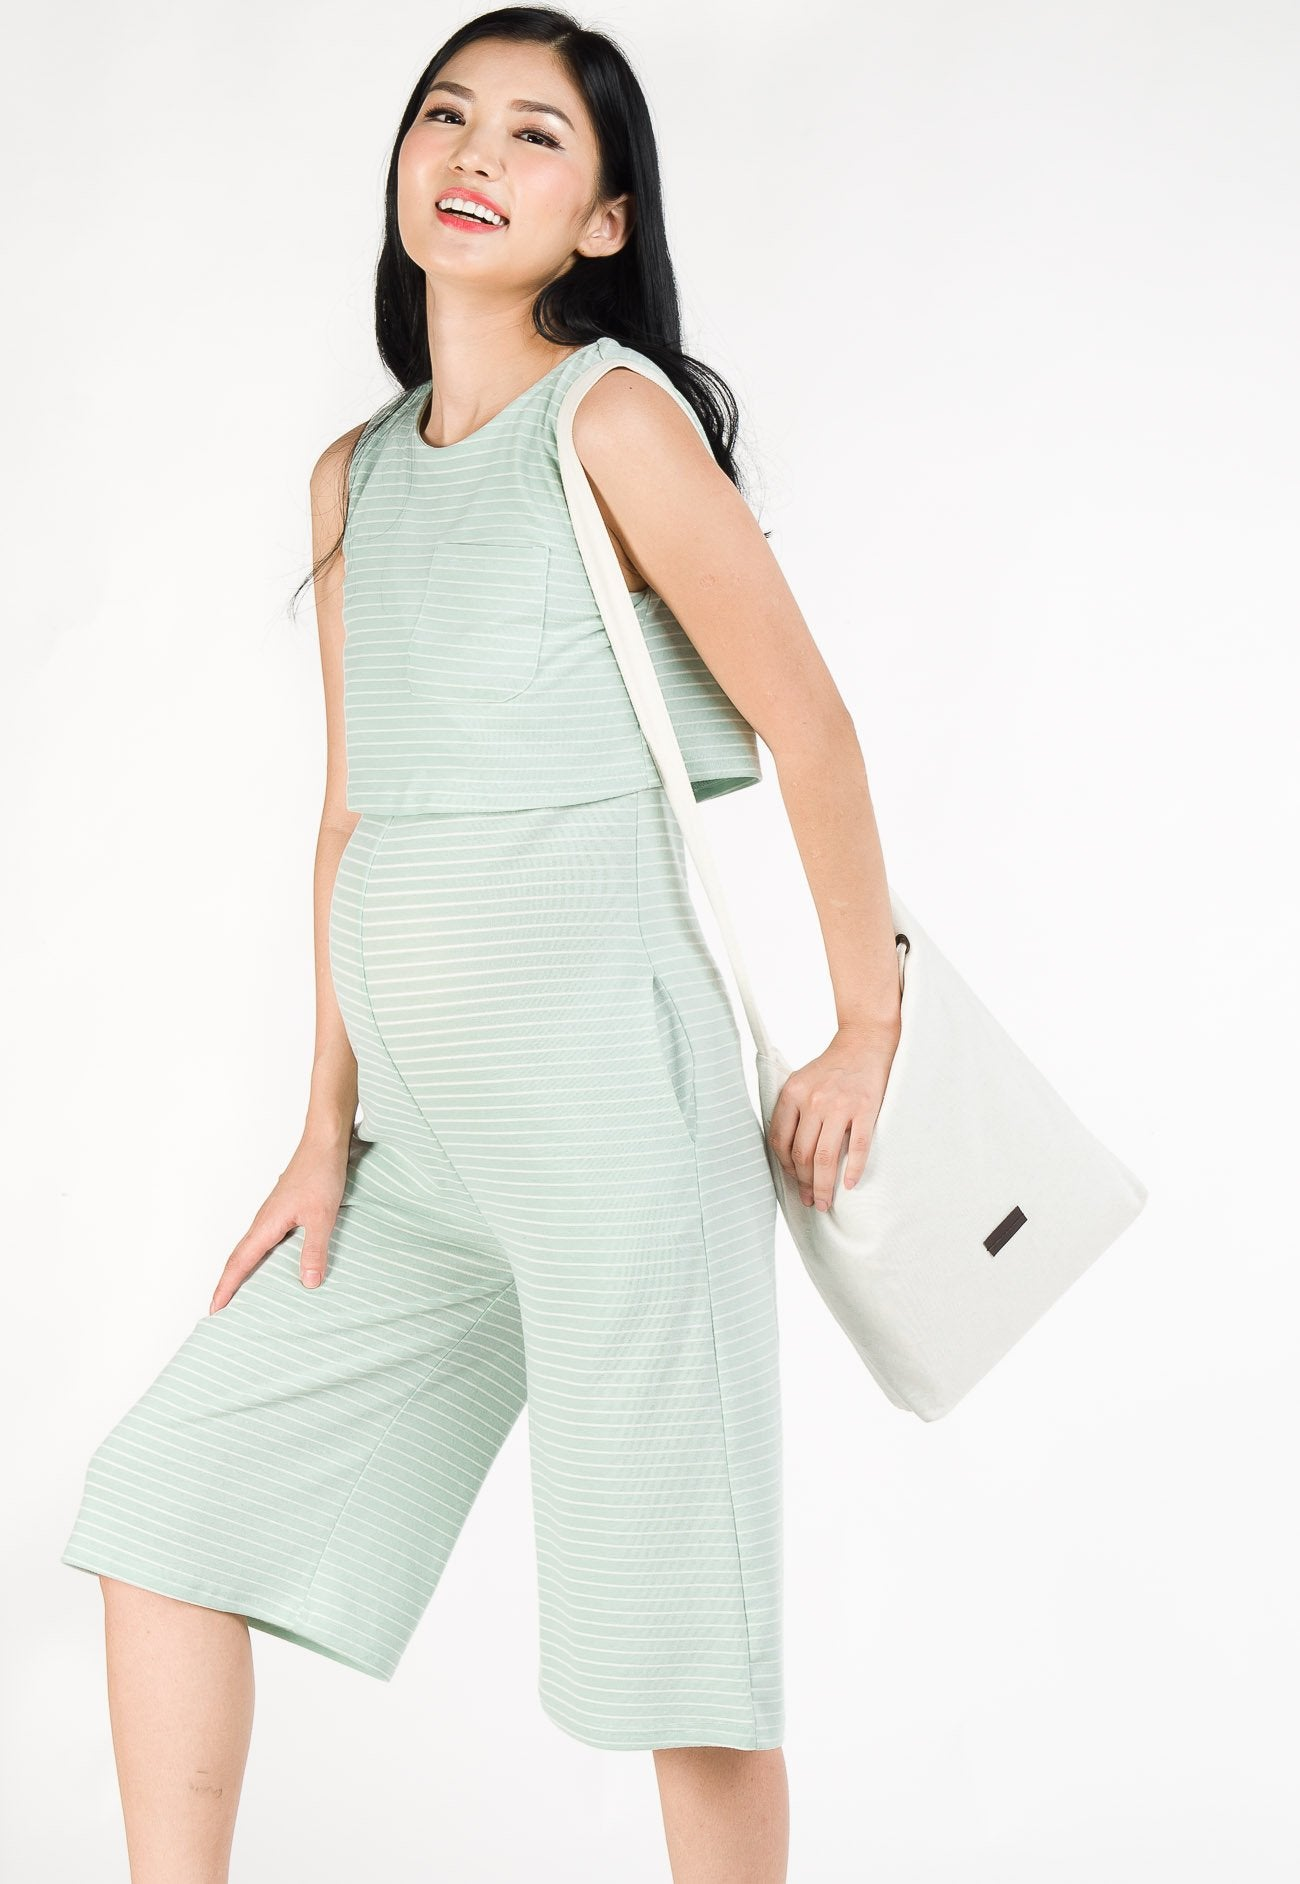 Taffy Striped Nursing Jumpsuit in Light Turquoise  by Jump Eat Cry - Maternity and nursing wear